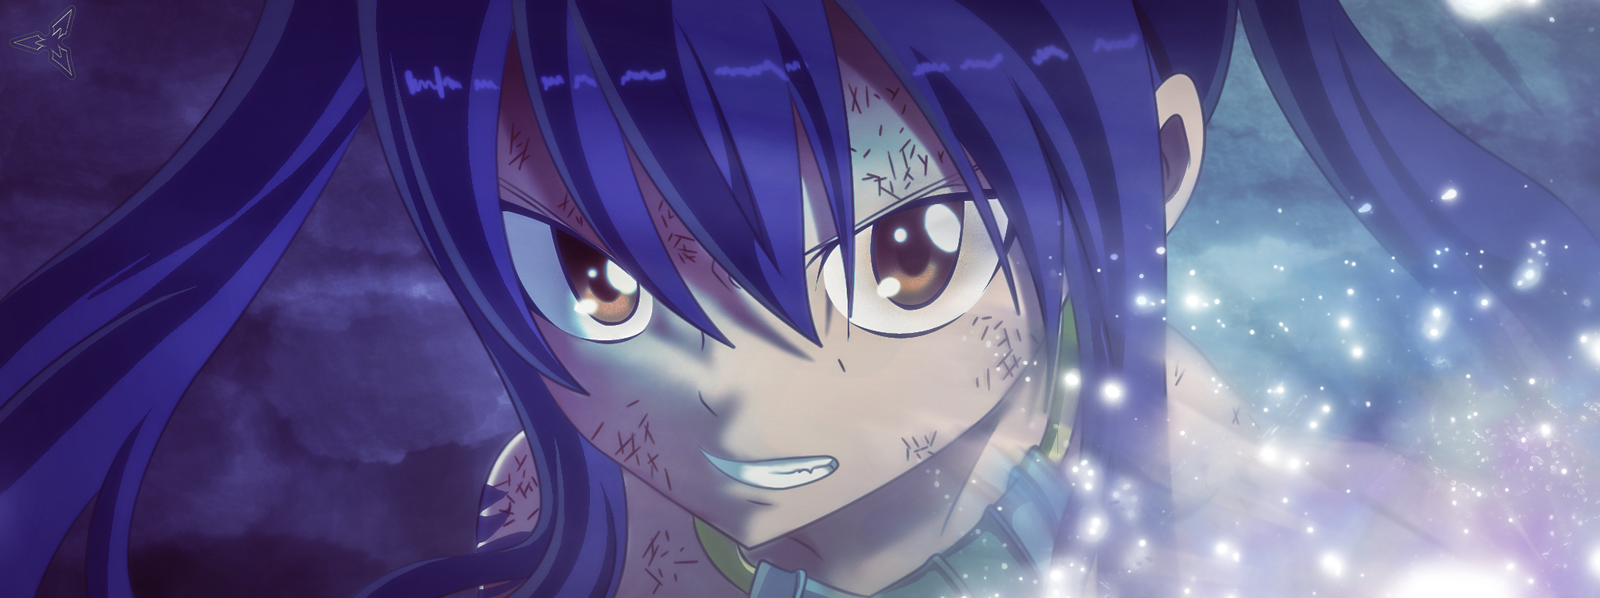 Wendy Marvell Fairy Tail The sky dragon by TheFastBoost on ...  Wendy Marvell F...